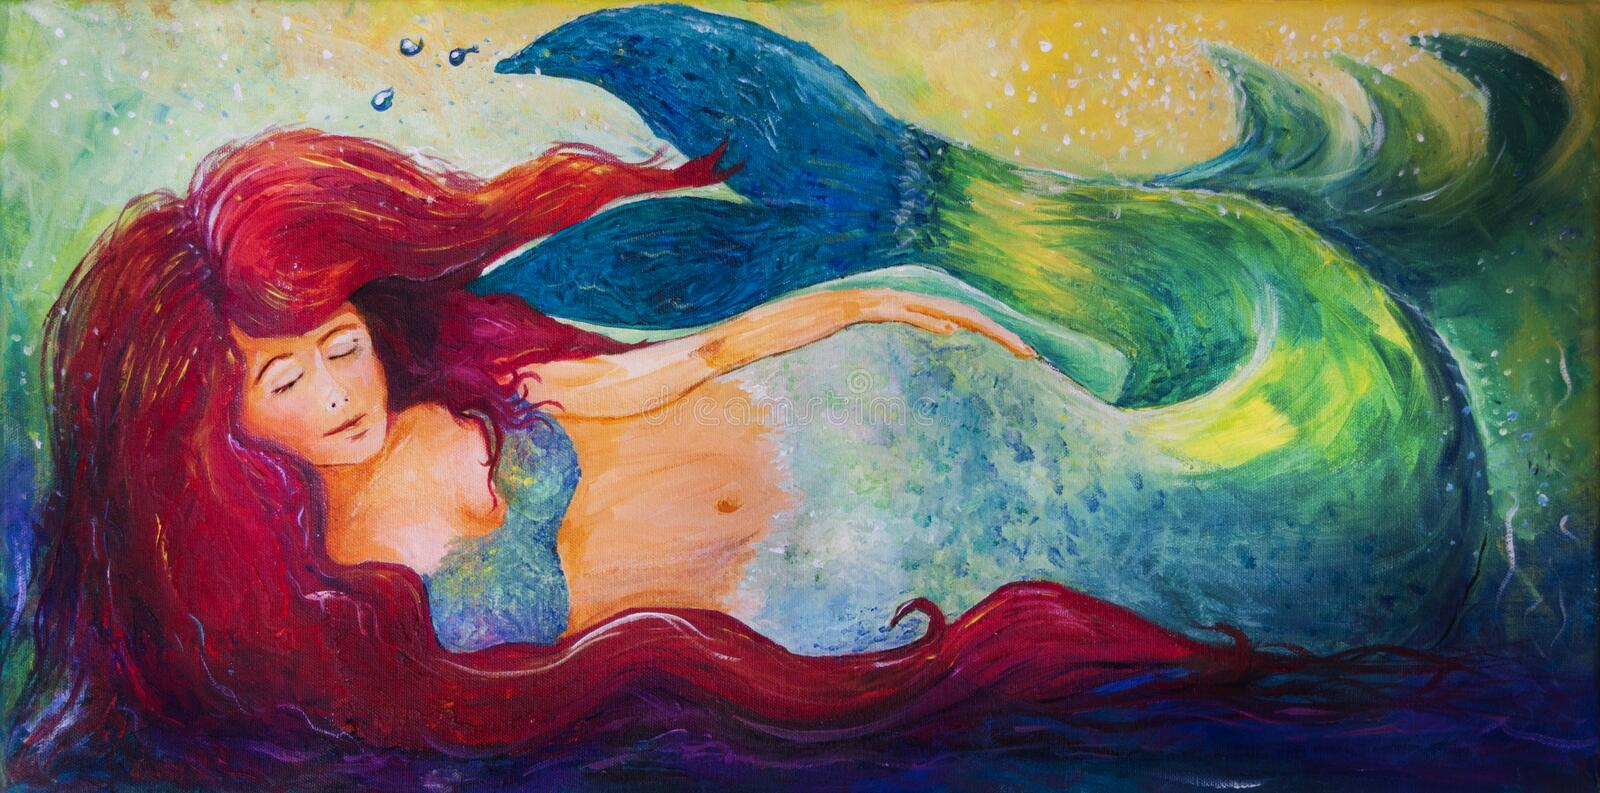 Mermaid. Acrylic on canvas art of a bright red haired mythical mermaid lounging in the waves